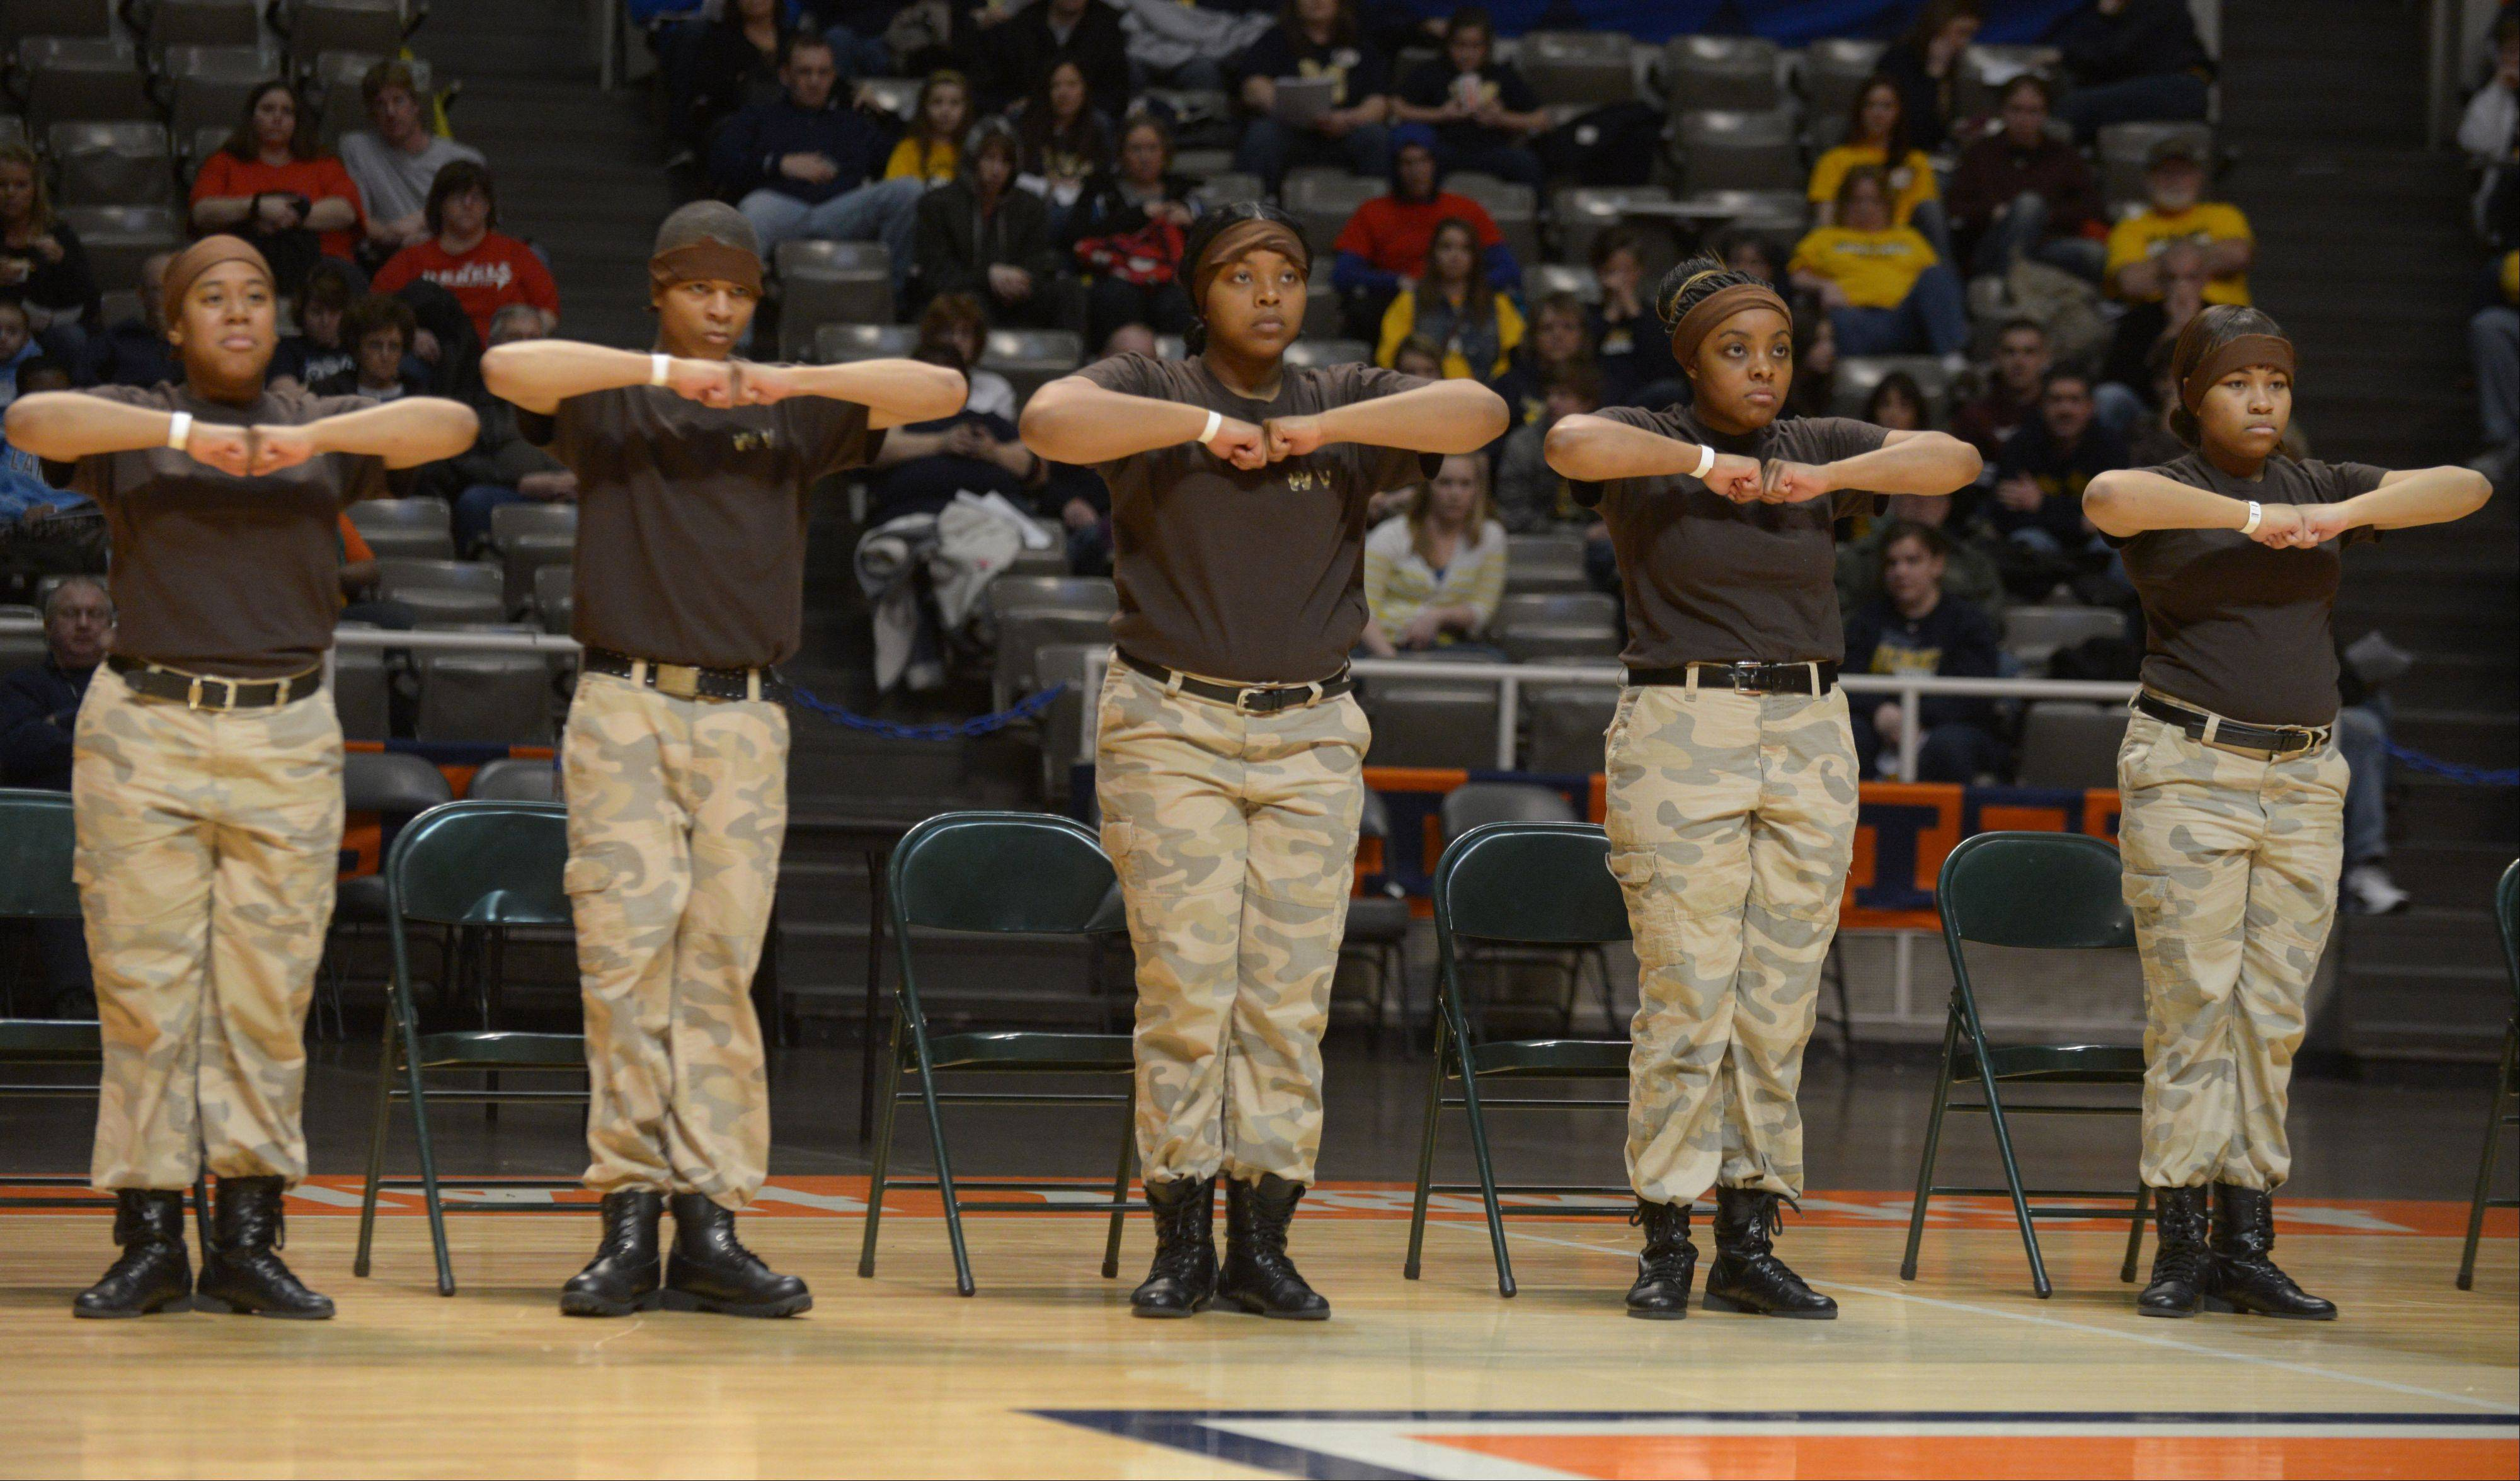 The Waubonsie Valley AAA Step team takes part in the Illinois Drill Team Association State Championships, held at University of Illinois Assembly Hall Saturday.